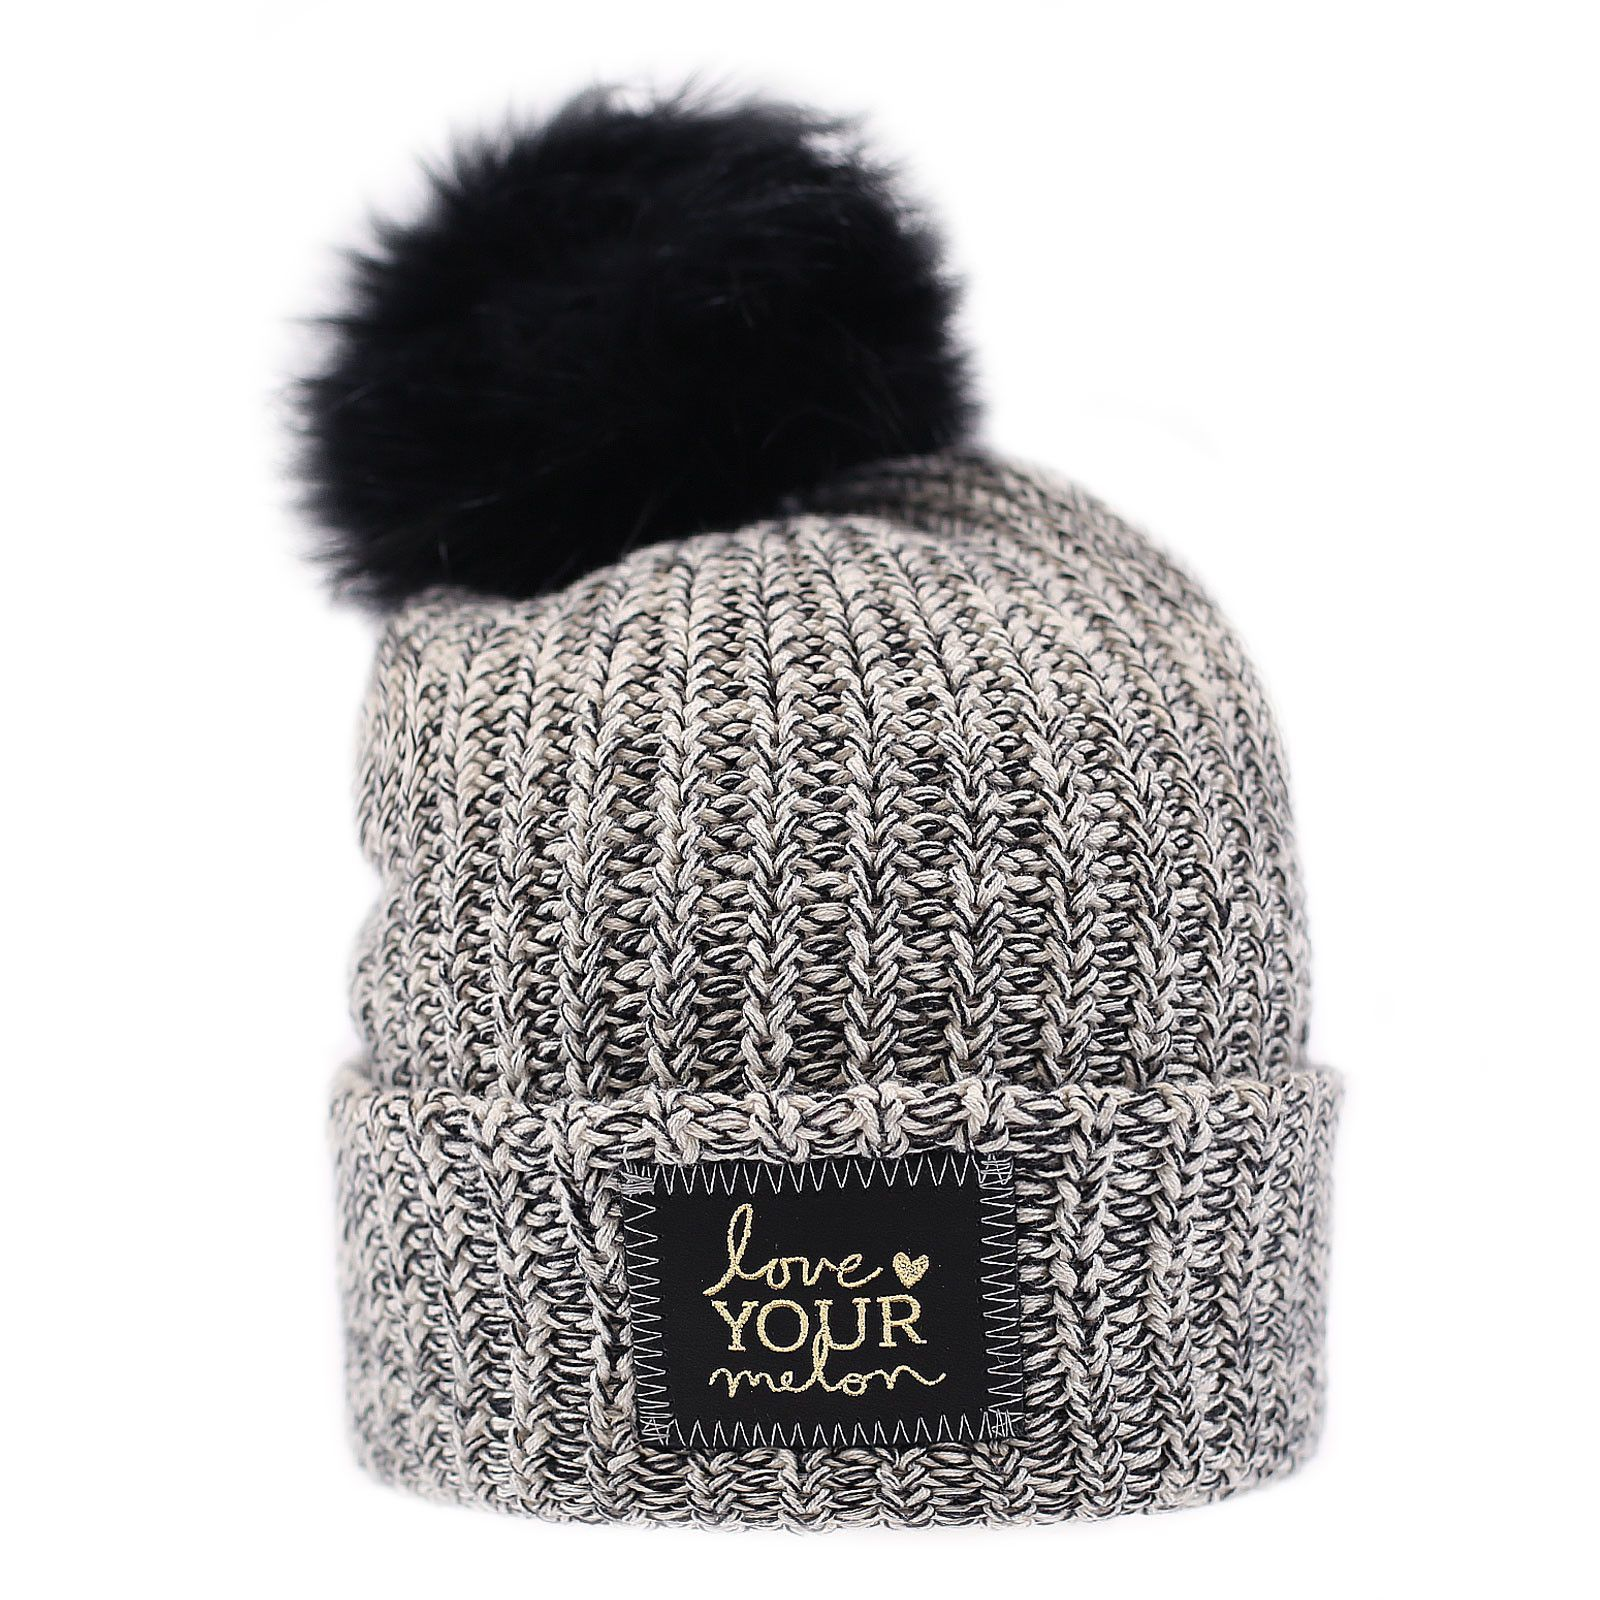 f931d829c6c9c Black Speckled Gold Foil Cuffed Pom Beanie (Black Pom). Black Speckled Gold  Foil Cuffed Pom Beanie (Black Pom) Love Your Melon Hats